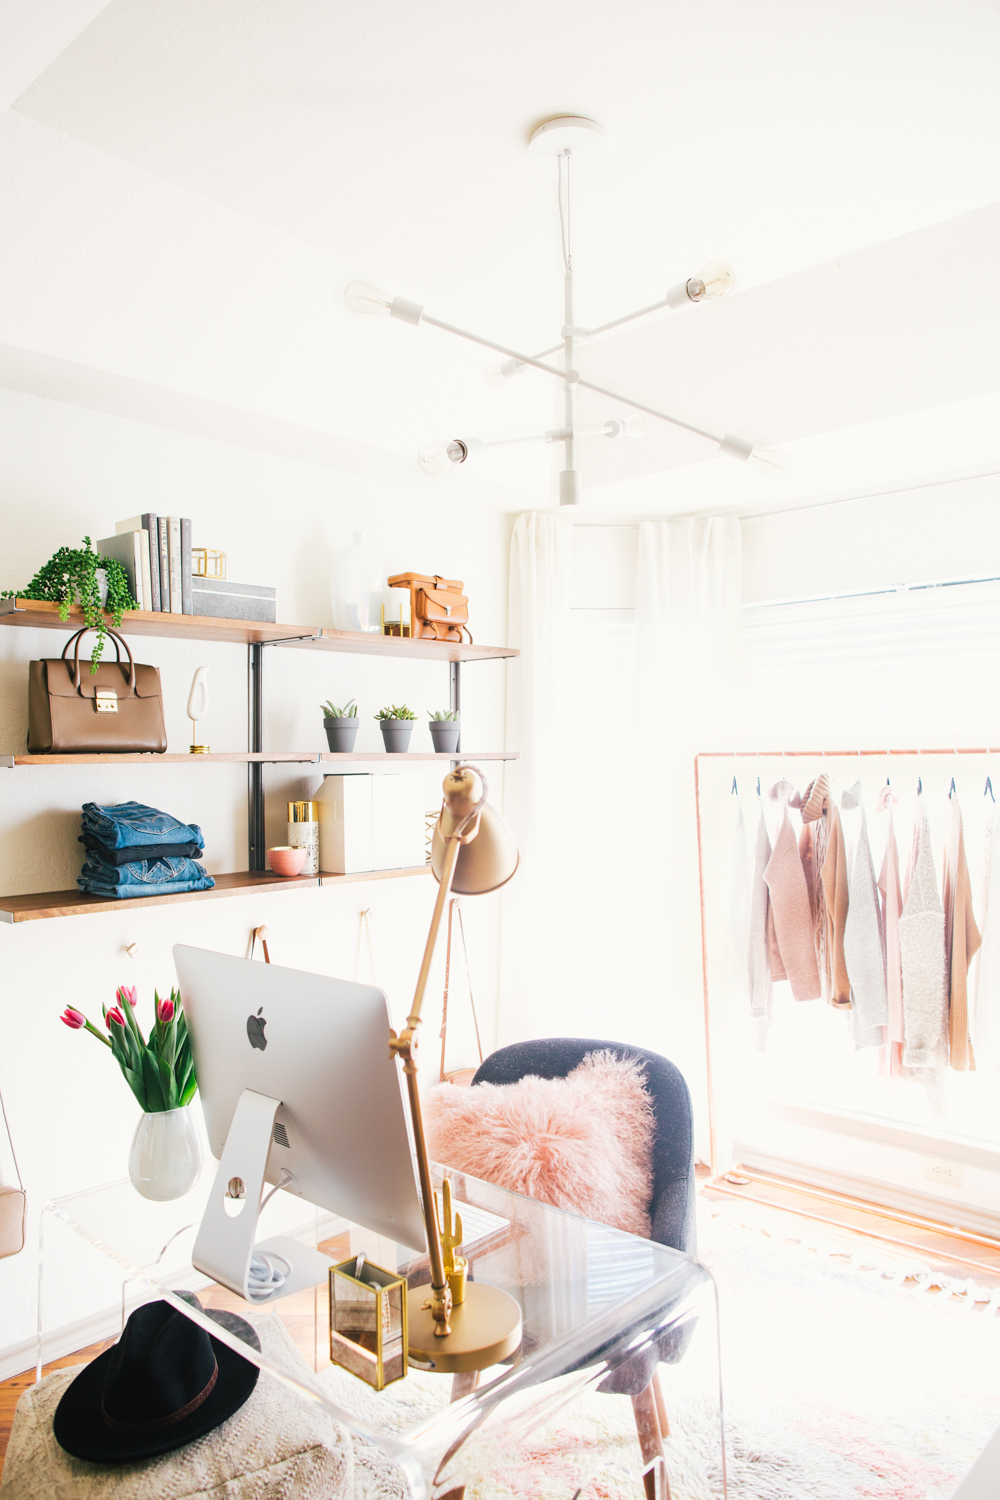 livvyland-blog-olivia-watson-west-elm-home-office-before-after-reveal-pink-grey-cozy-chic-white-airy-girly-austin-texas-fashion-blogger-1